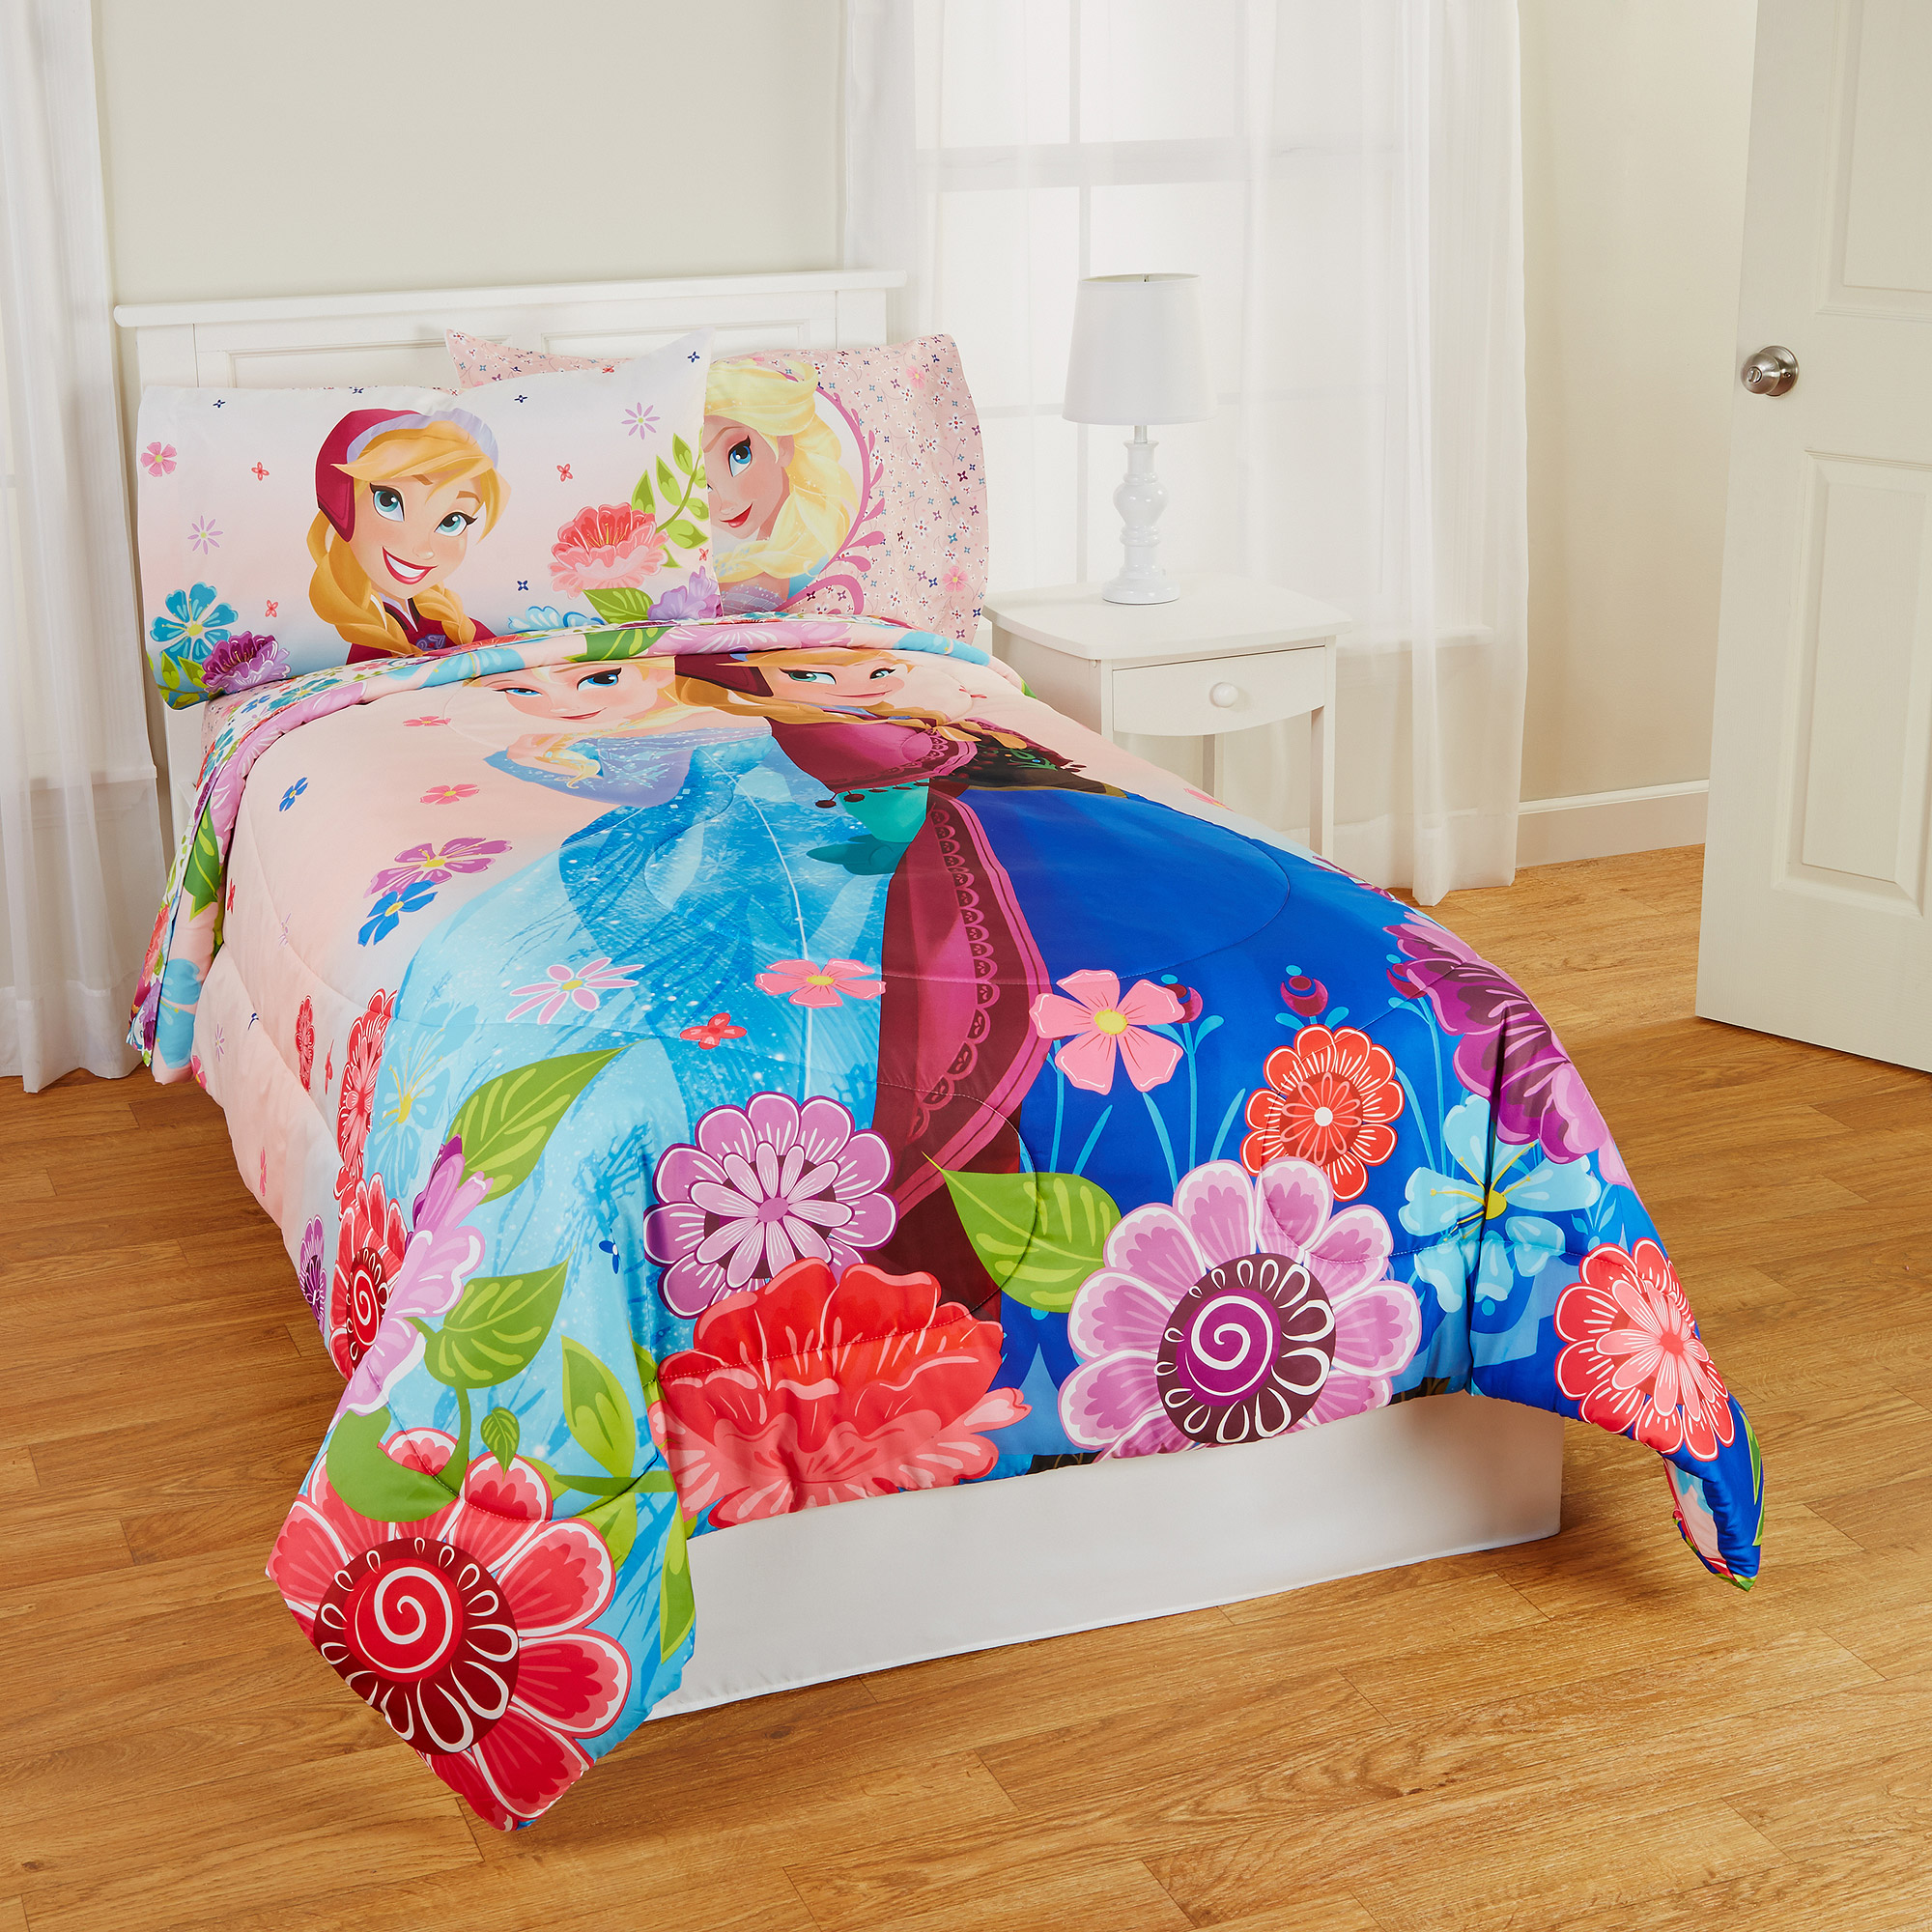 Frozen Floral Breeze Twin/Full Reversible Bedding Comforter, Pink